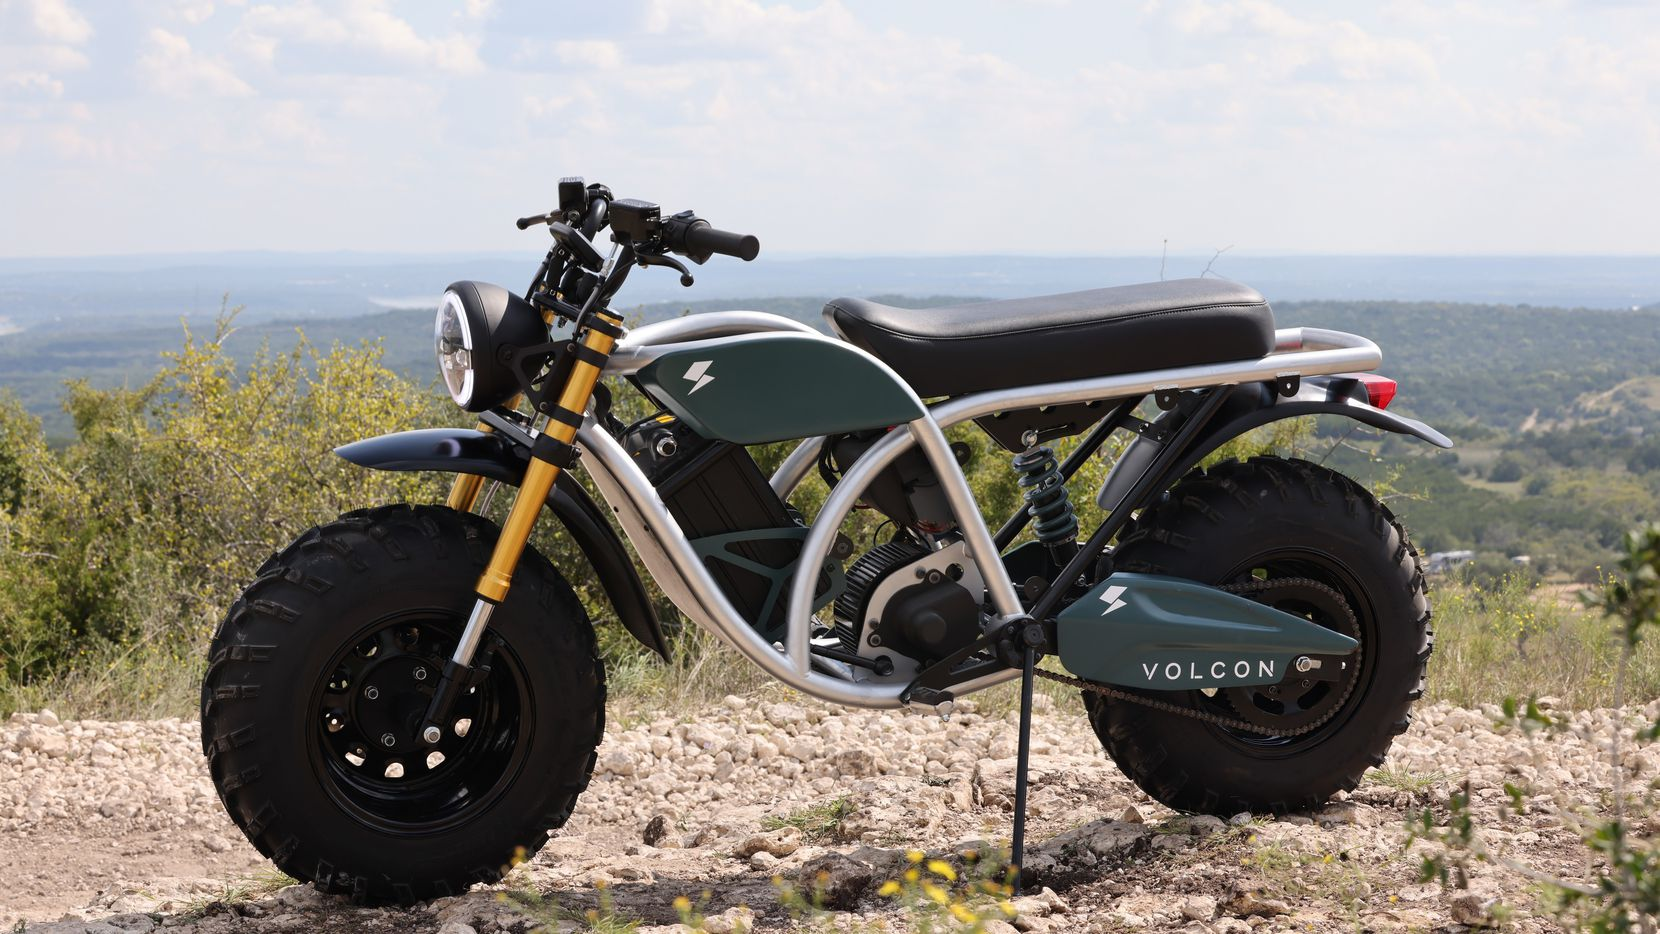 Volcon, which debuted in October, makes two-wheel and four-wheel electric off-road vehicles such as motorcycles and utility terrain vehicles.